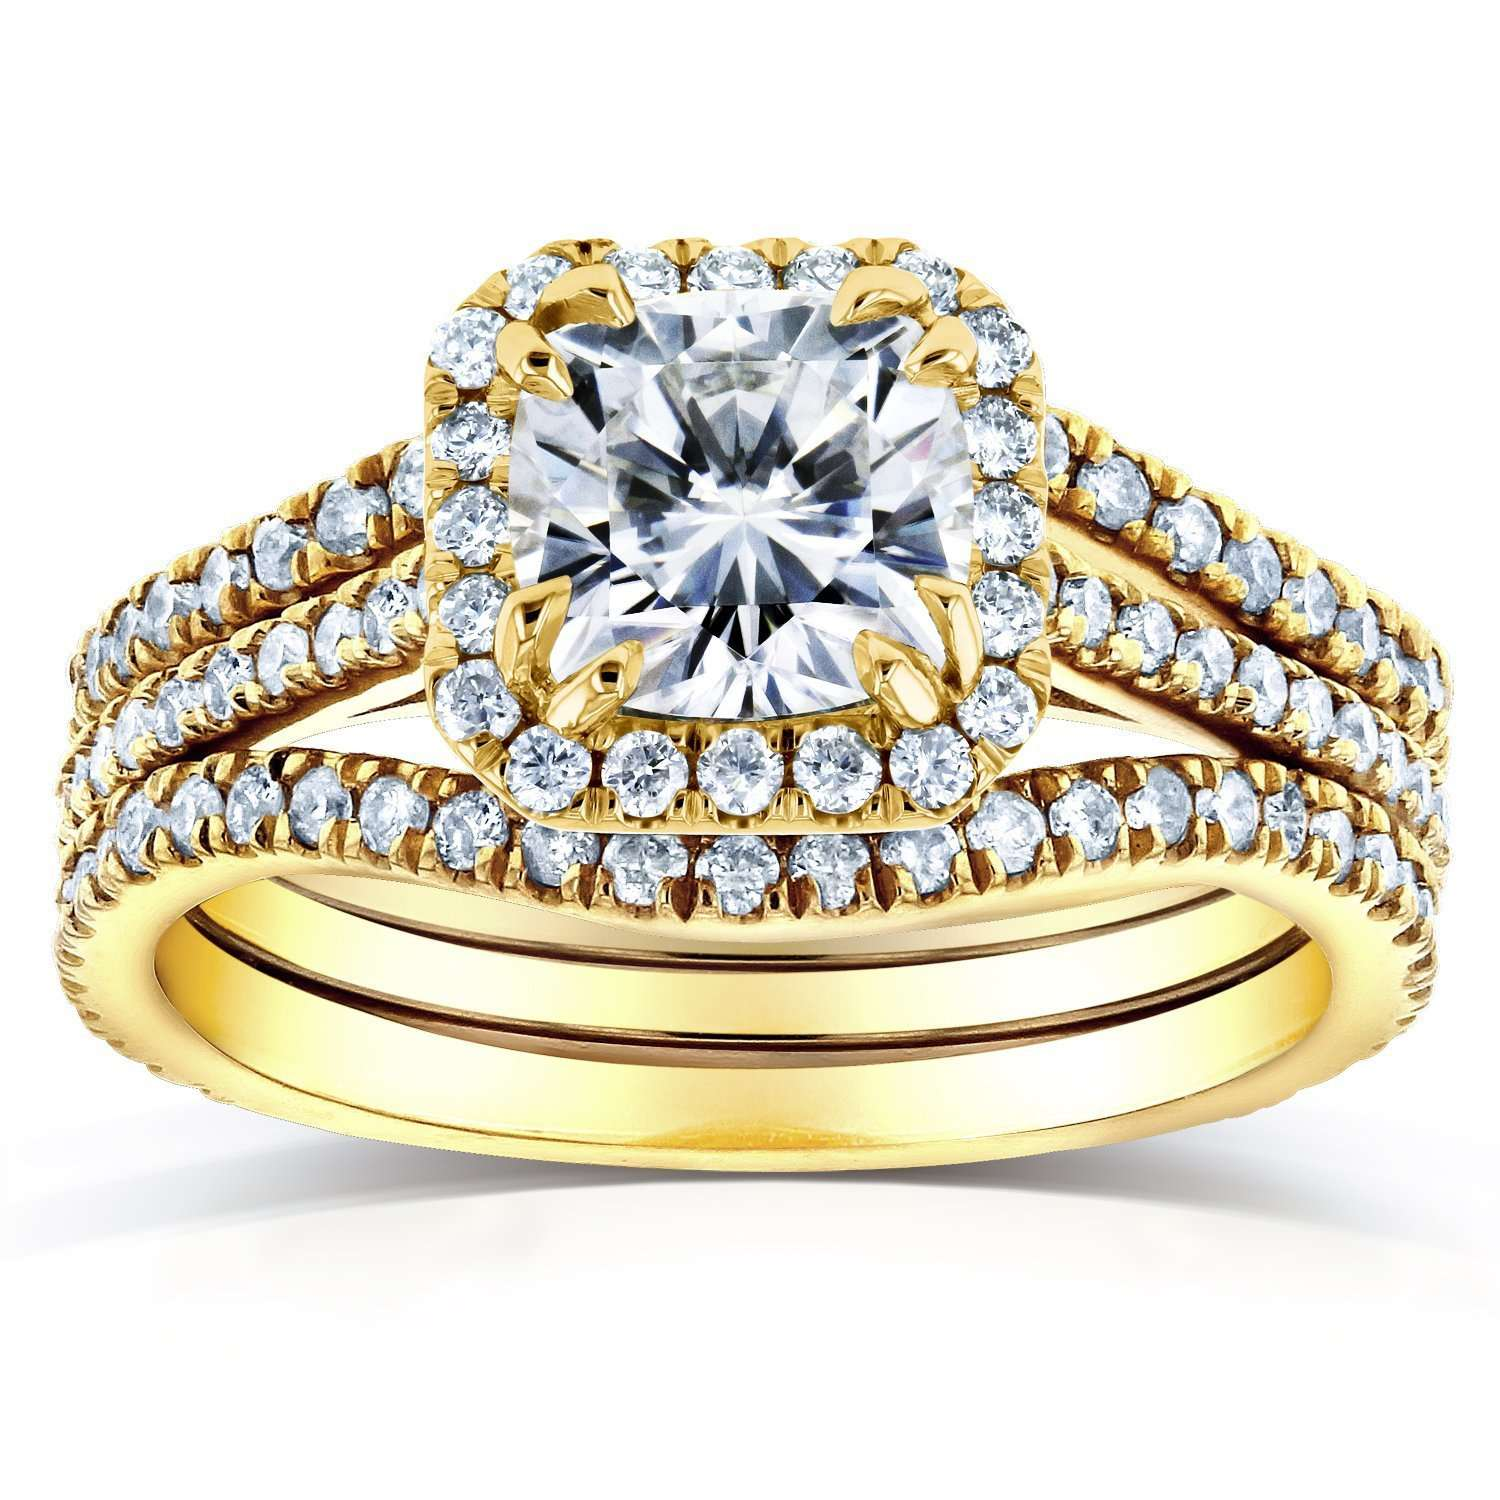 Coupons Near-Colorless (F-G) Cushion Moissanite and Diamond Halo Bridal Set 1 4/5 CTW in 14k Yellow Gold - 4